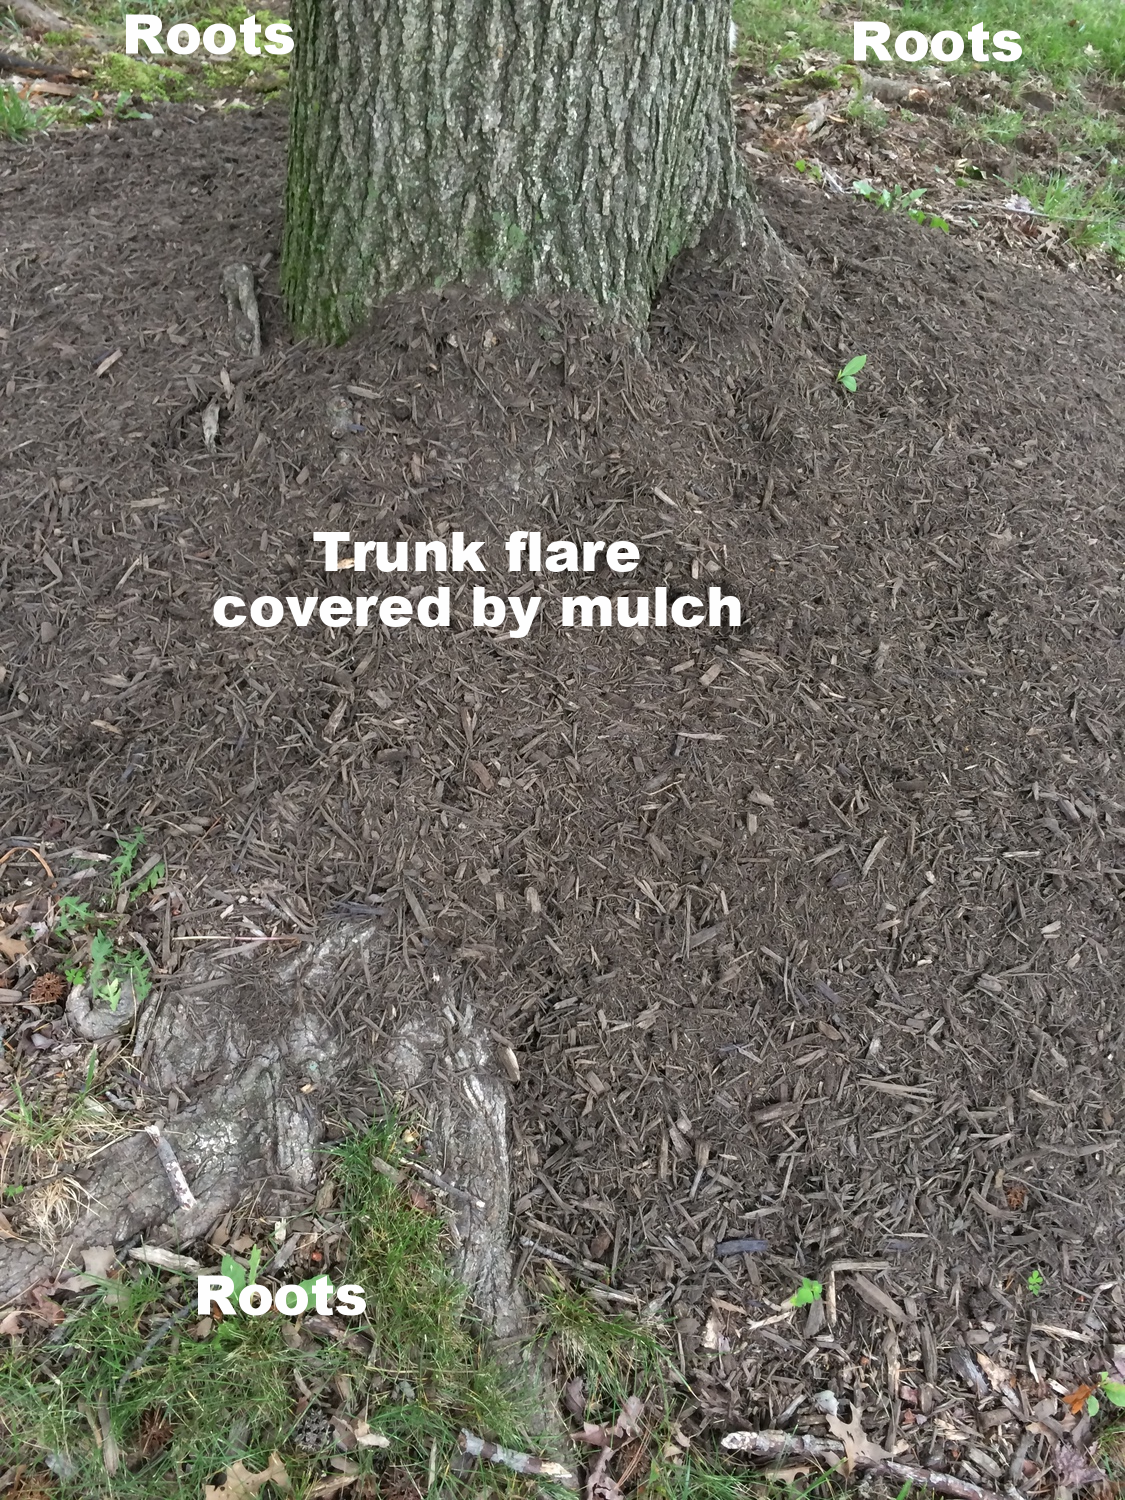 A swath of mulch was piled over a visible buttress of the trunk flare.